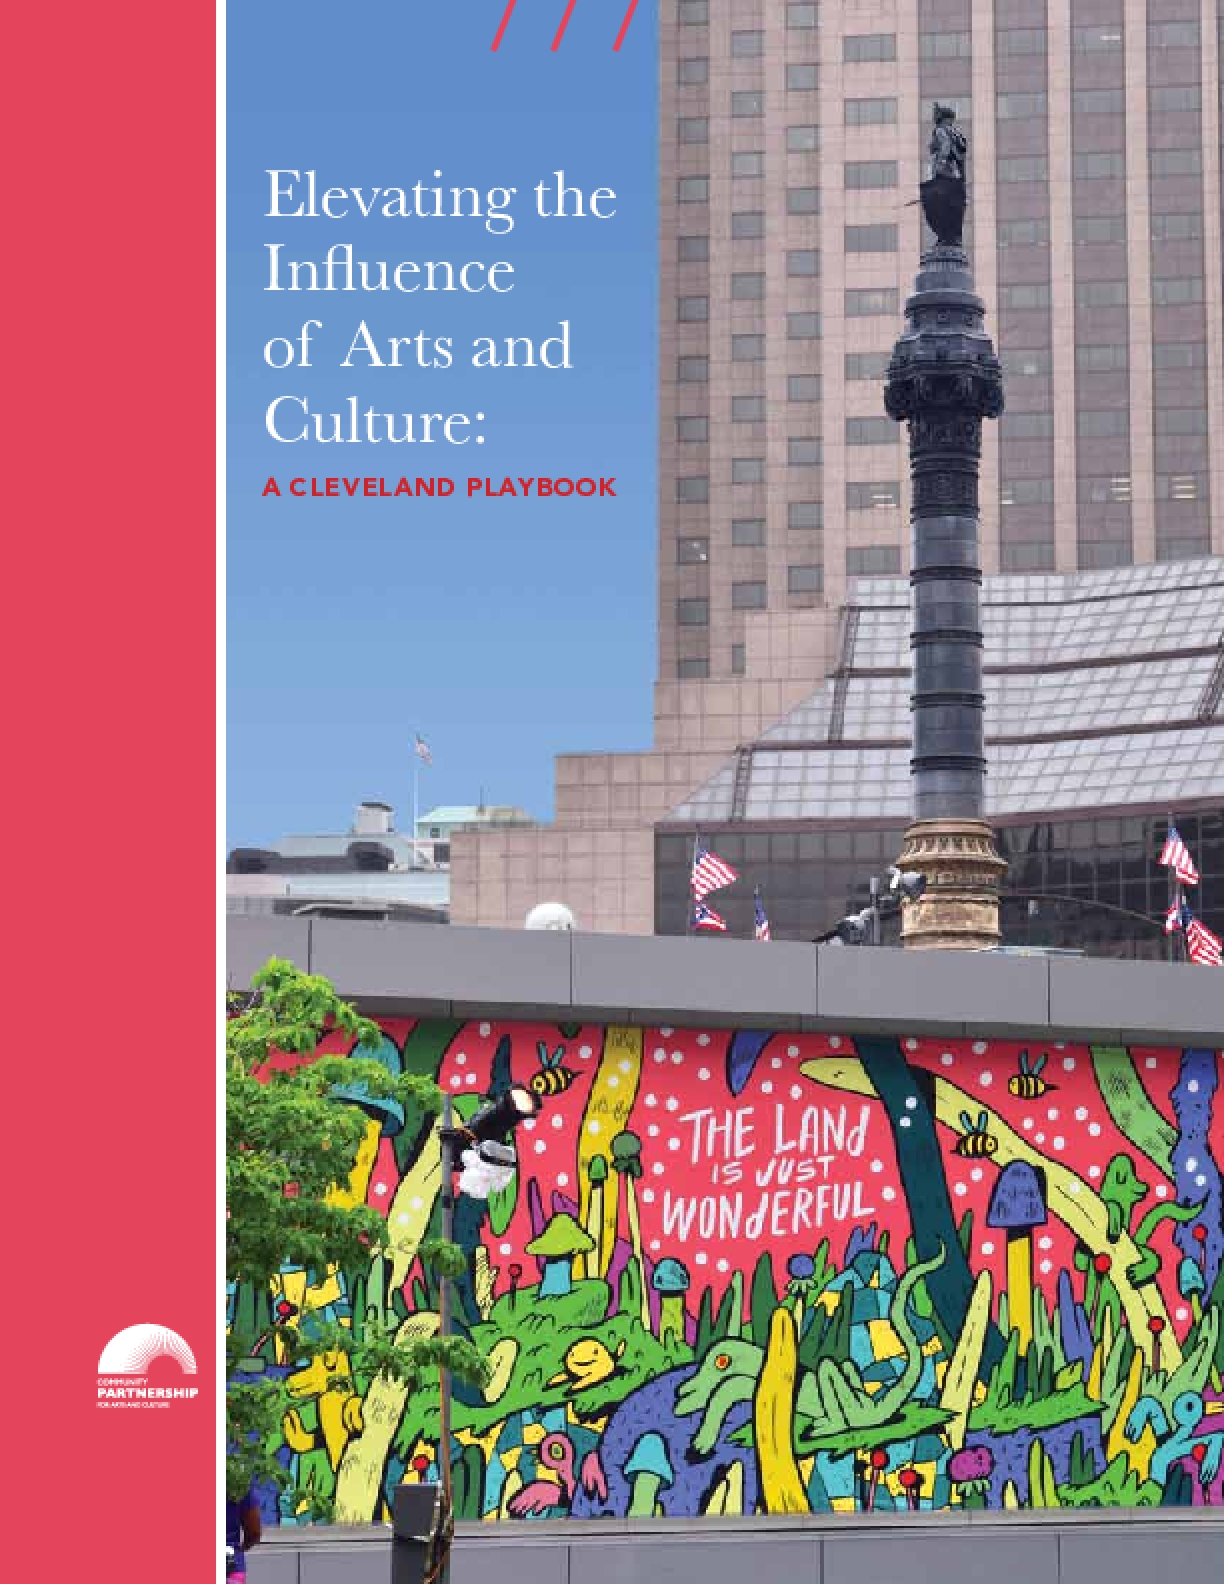 Elevating the Influence of Arts and Culture: A Cleveland Playbook